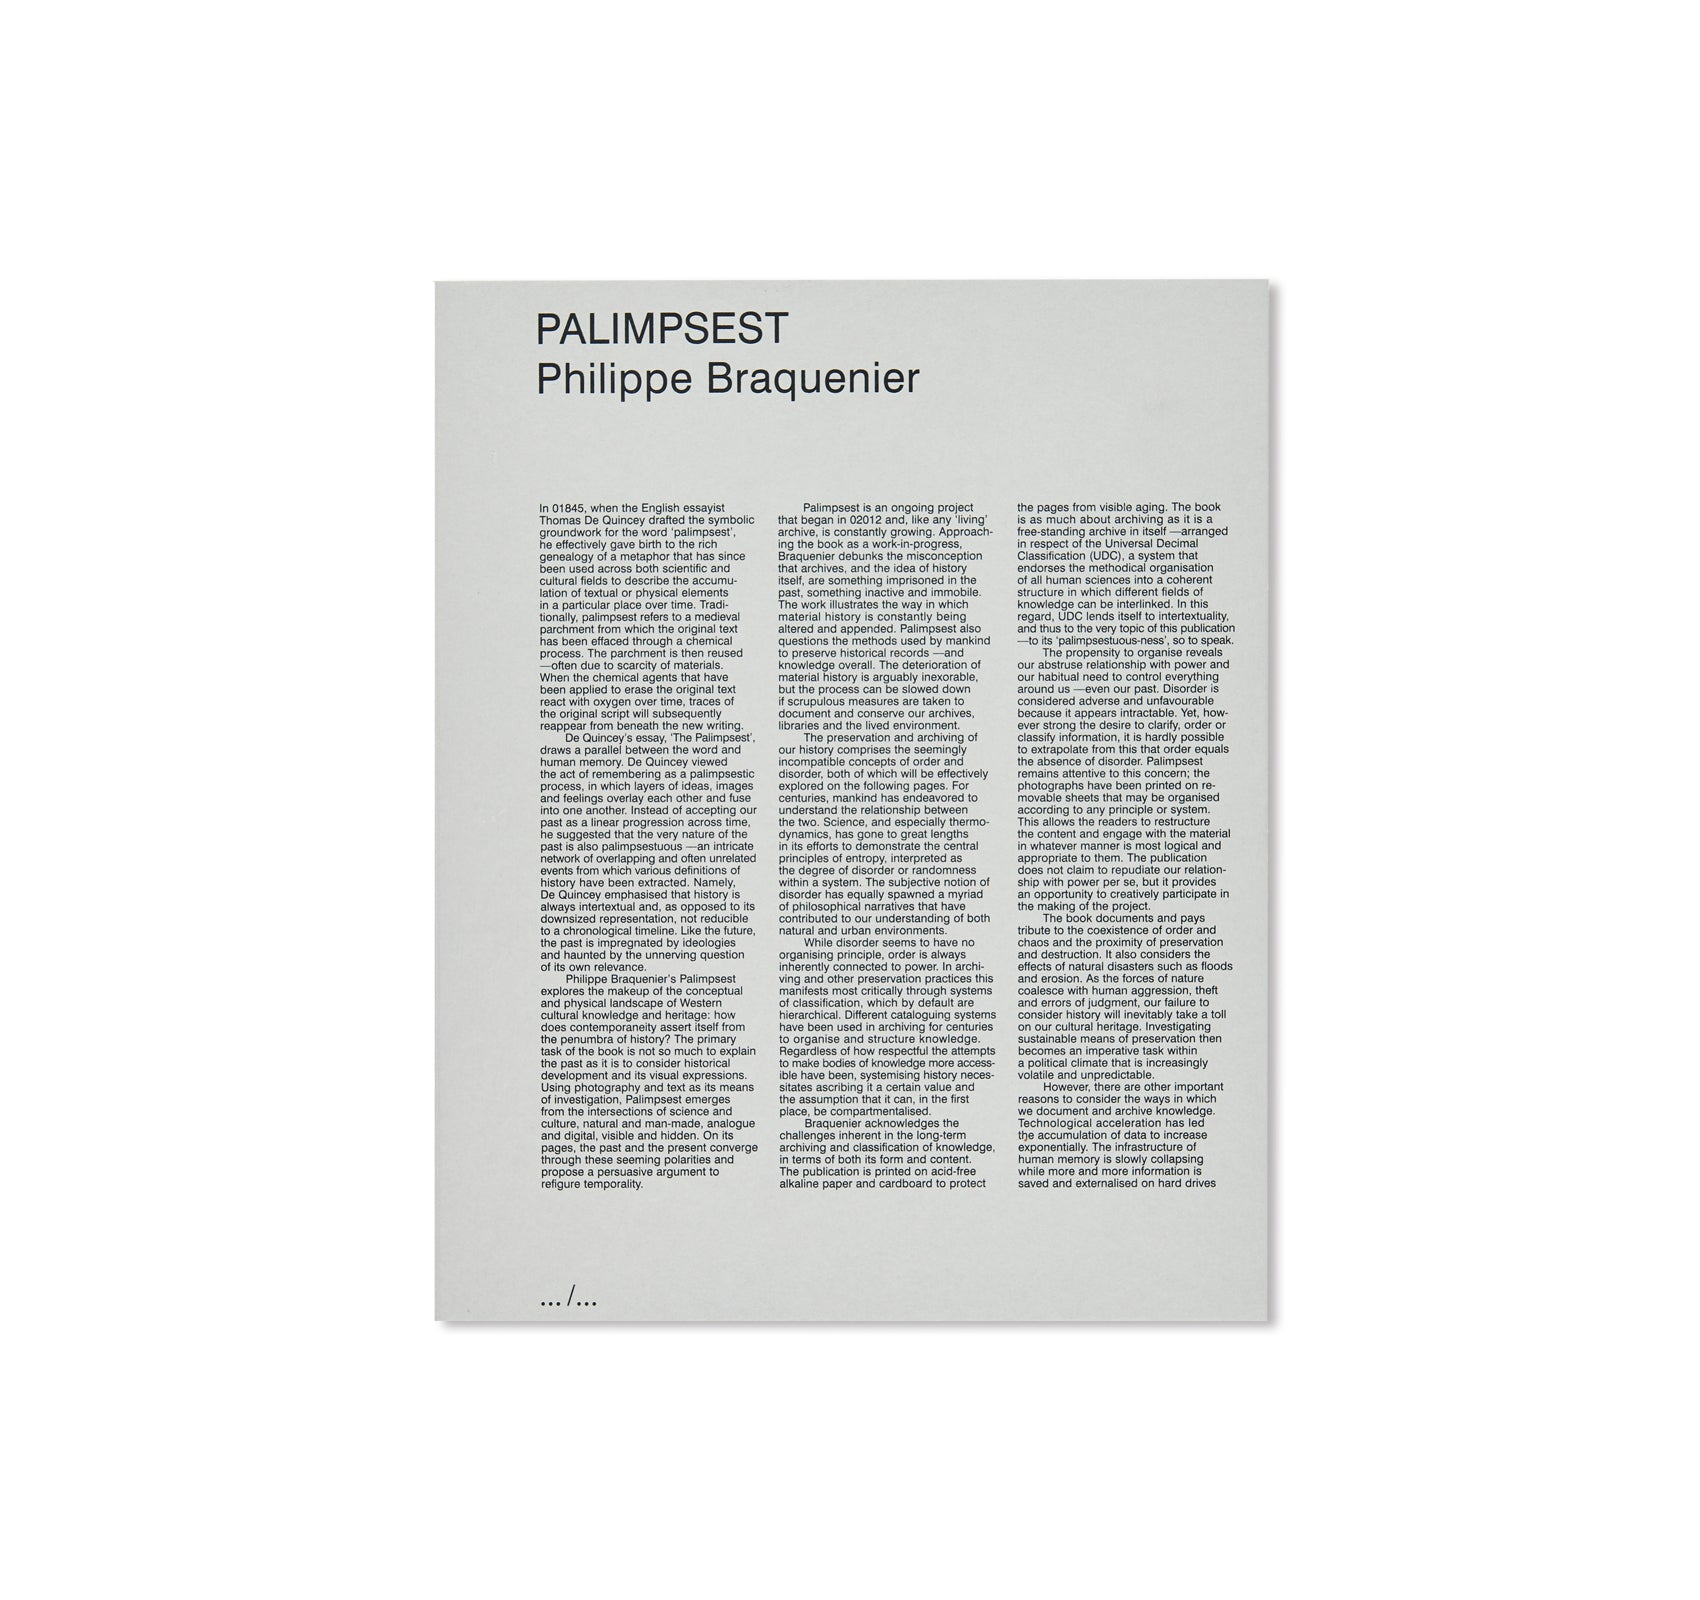 PALIMPSEST by Philippe Braquenier